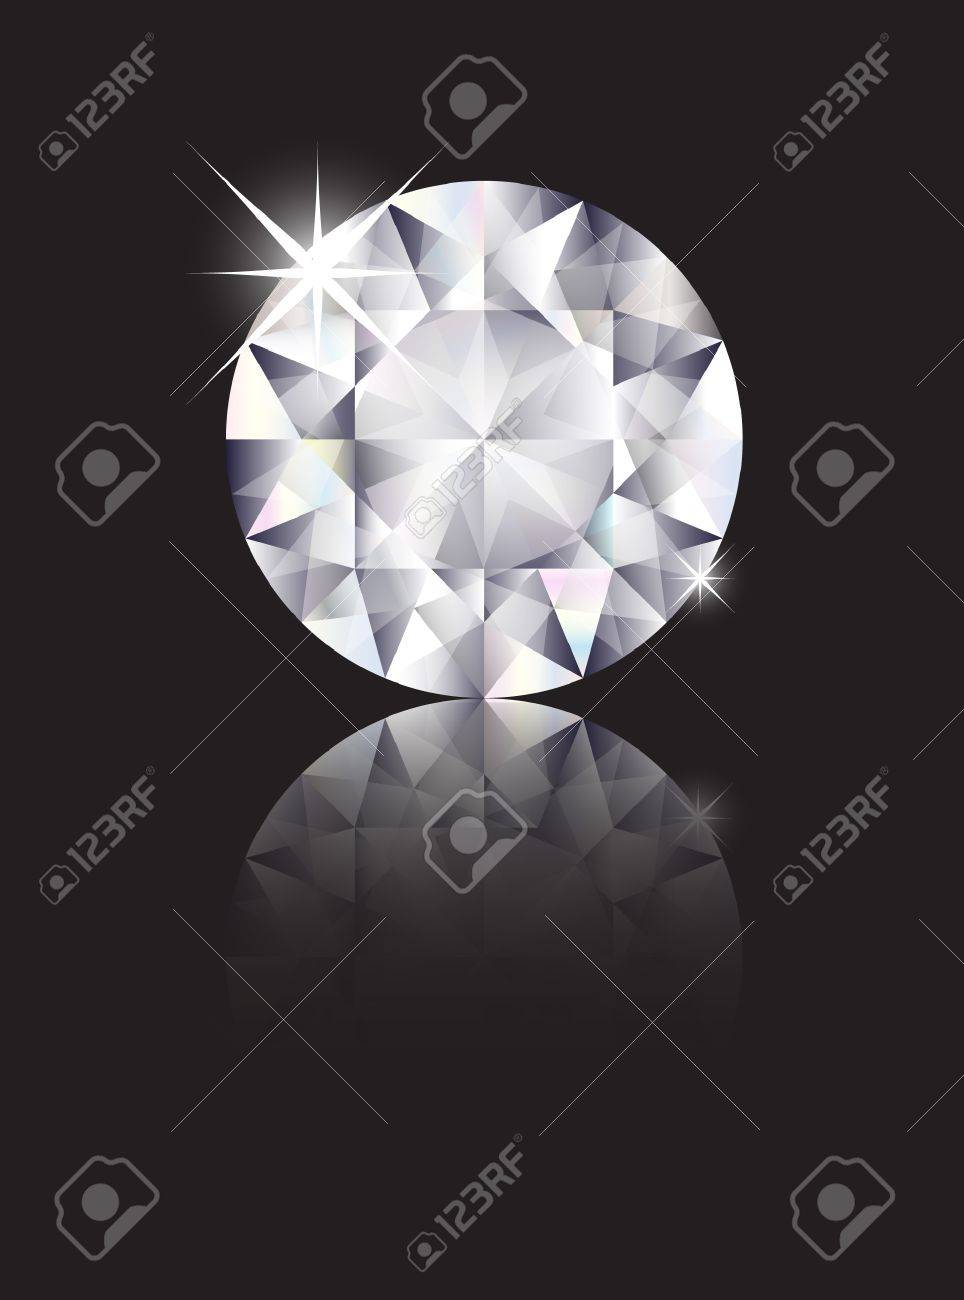 A brilliant cut diamond isolated on black with reflection. Space for text. EPS10 vector format Stock Vector - 10631729